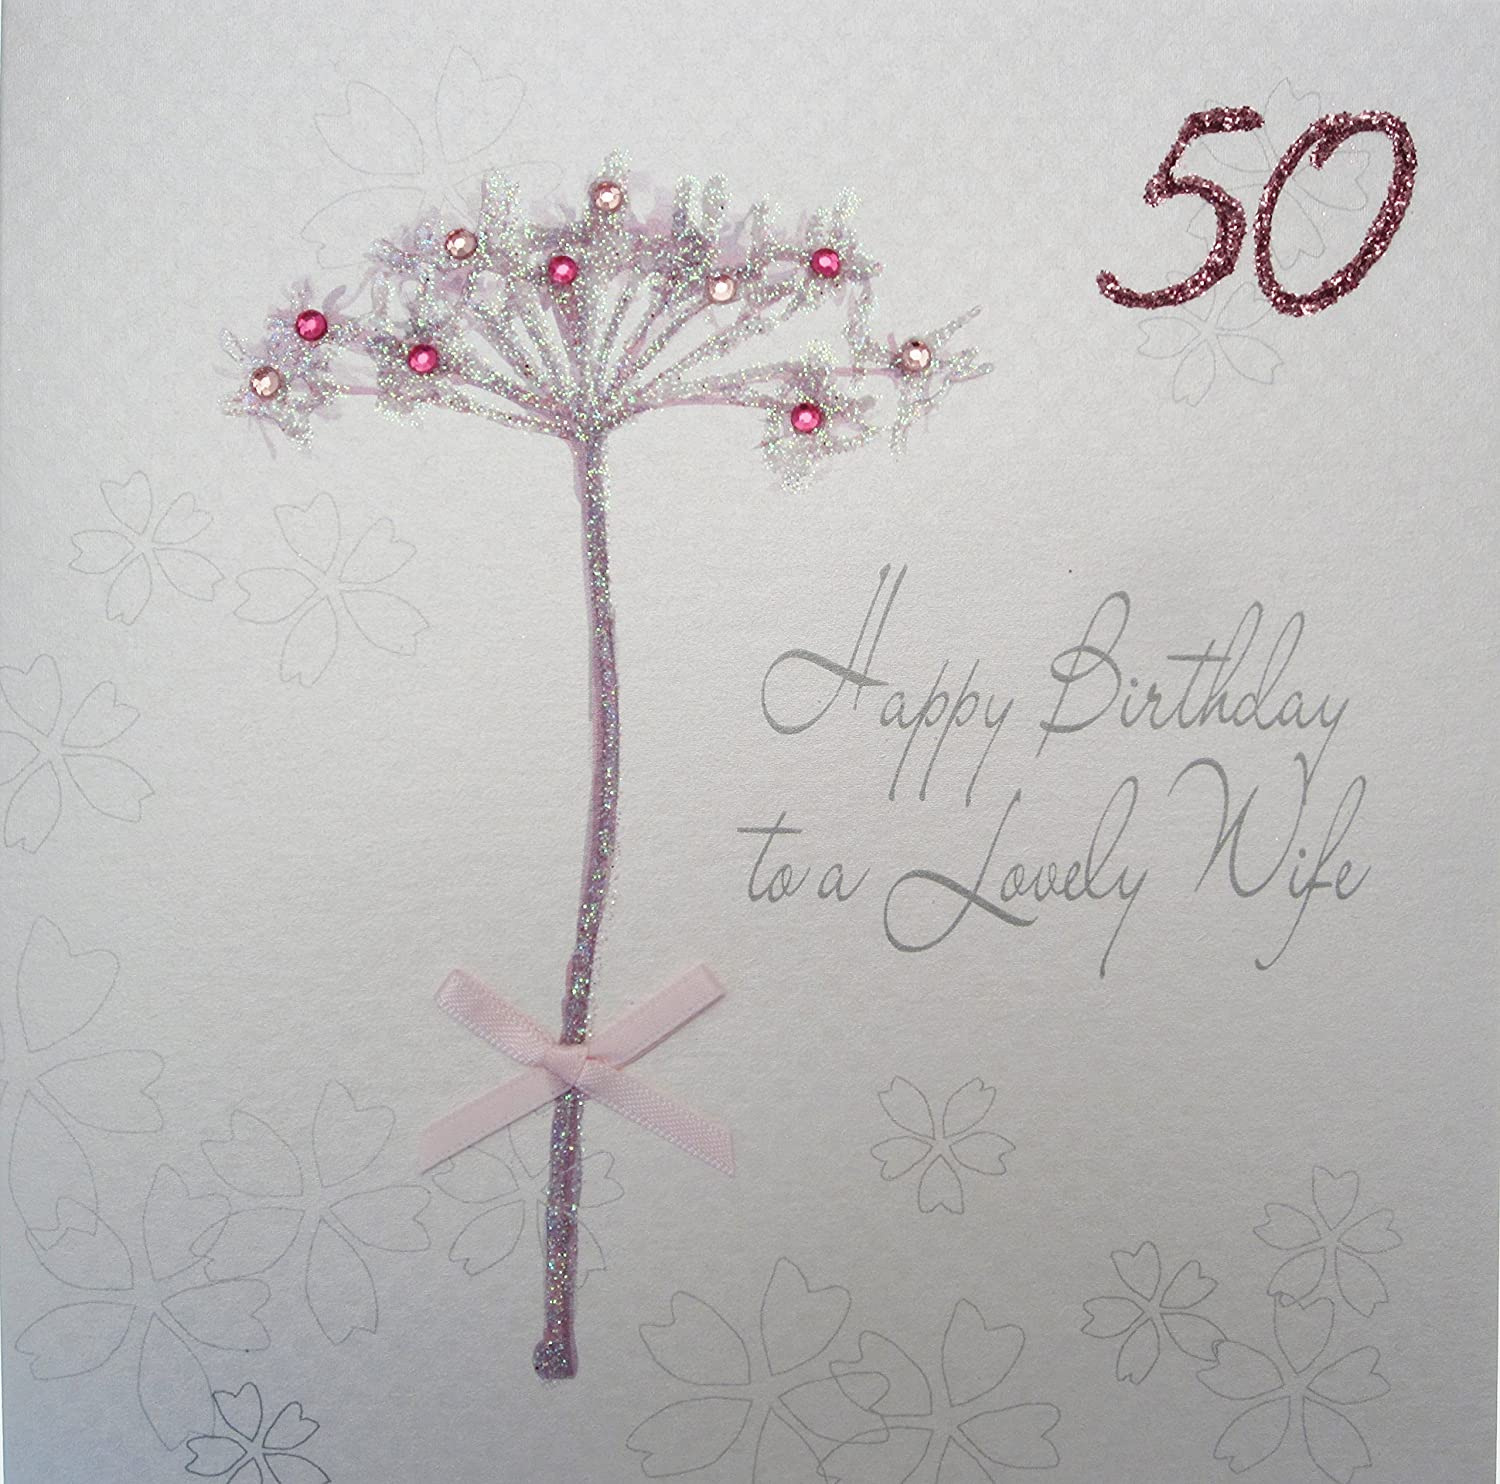 WHITE COTTON CARDS Happy Lovely Wife 50 Handmade 50th Birthday Card Dandelion Amazoncouk Kitchen Home